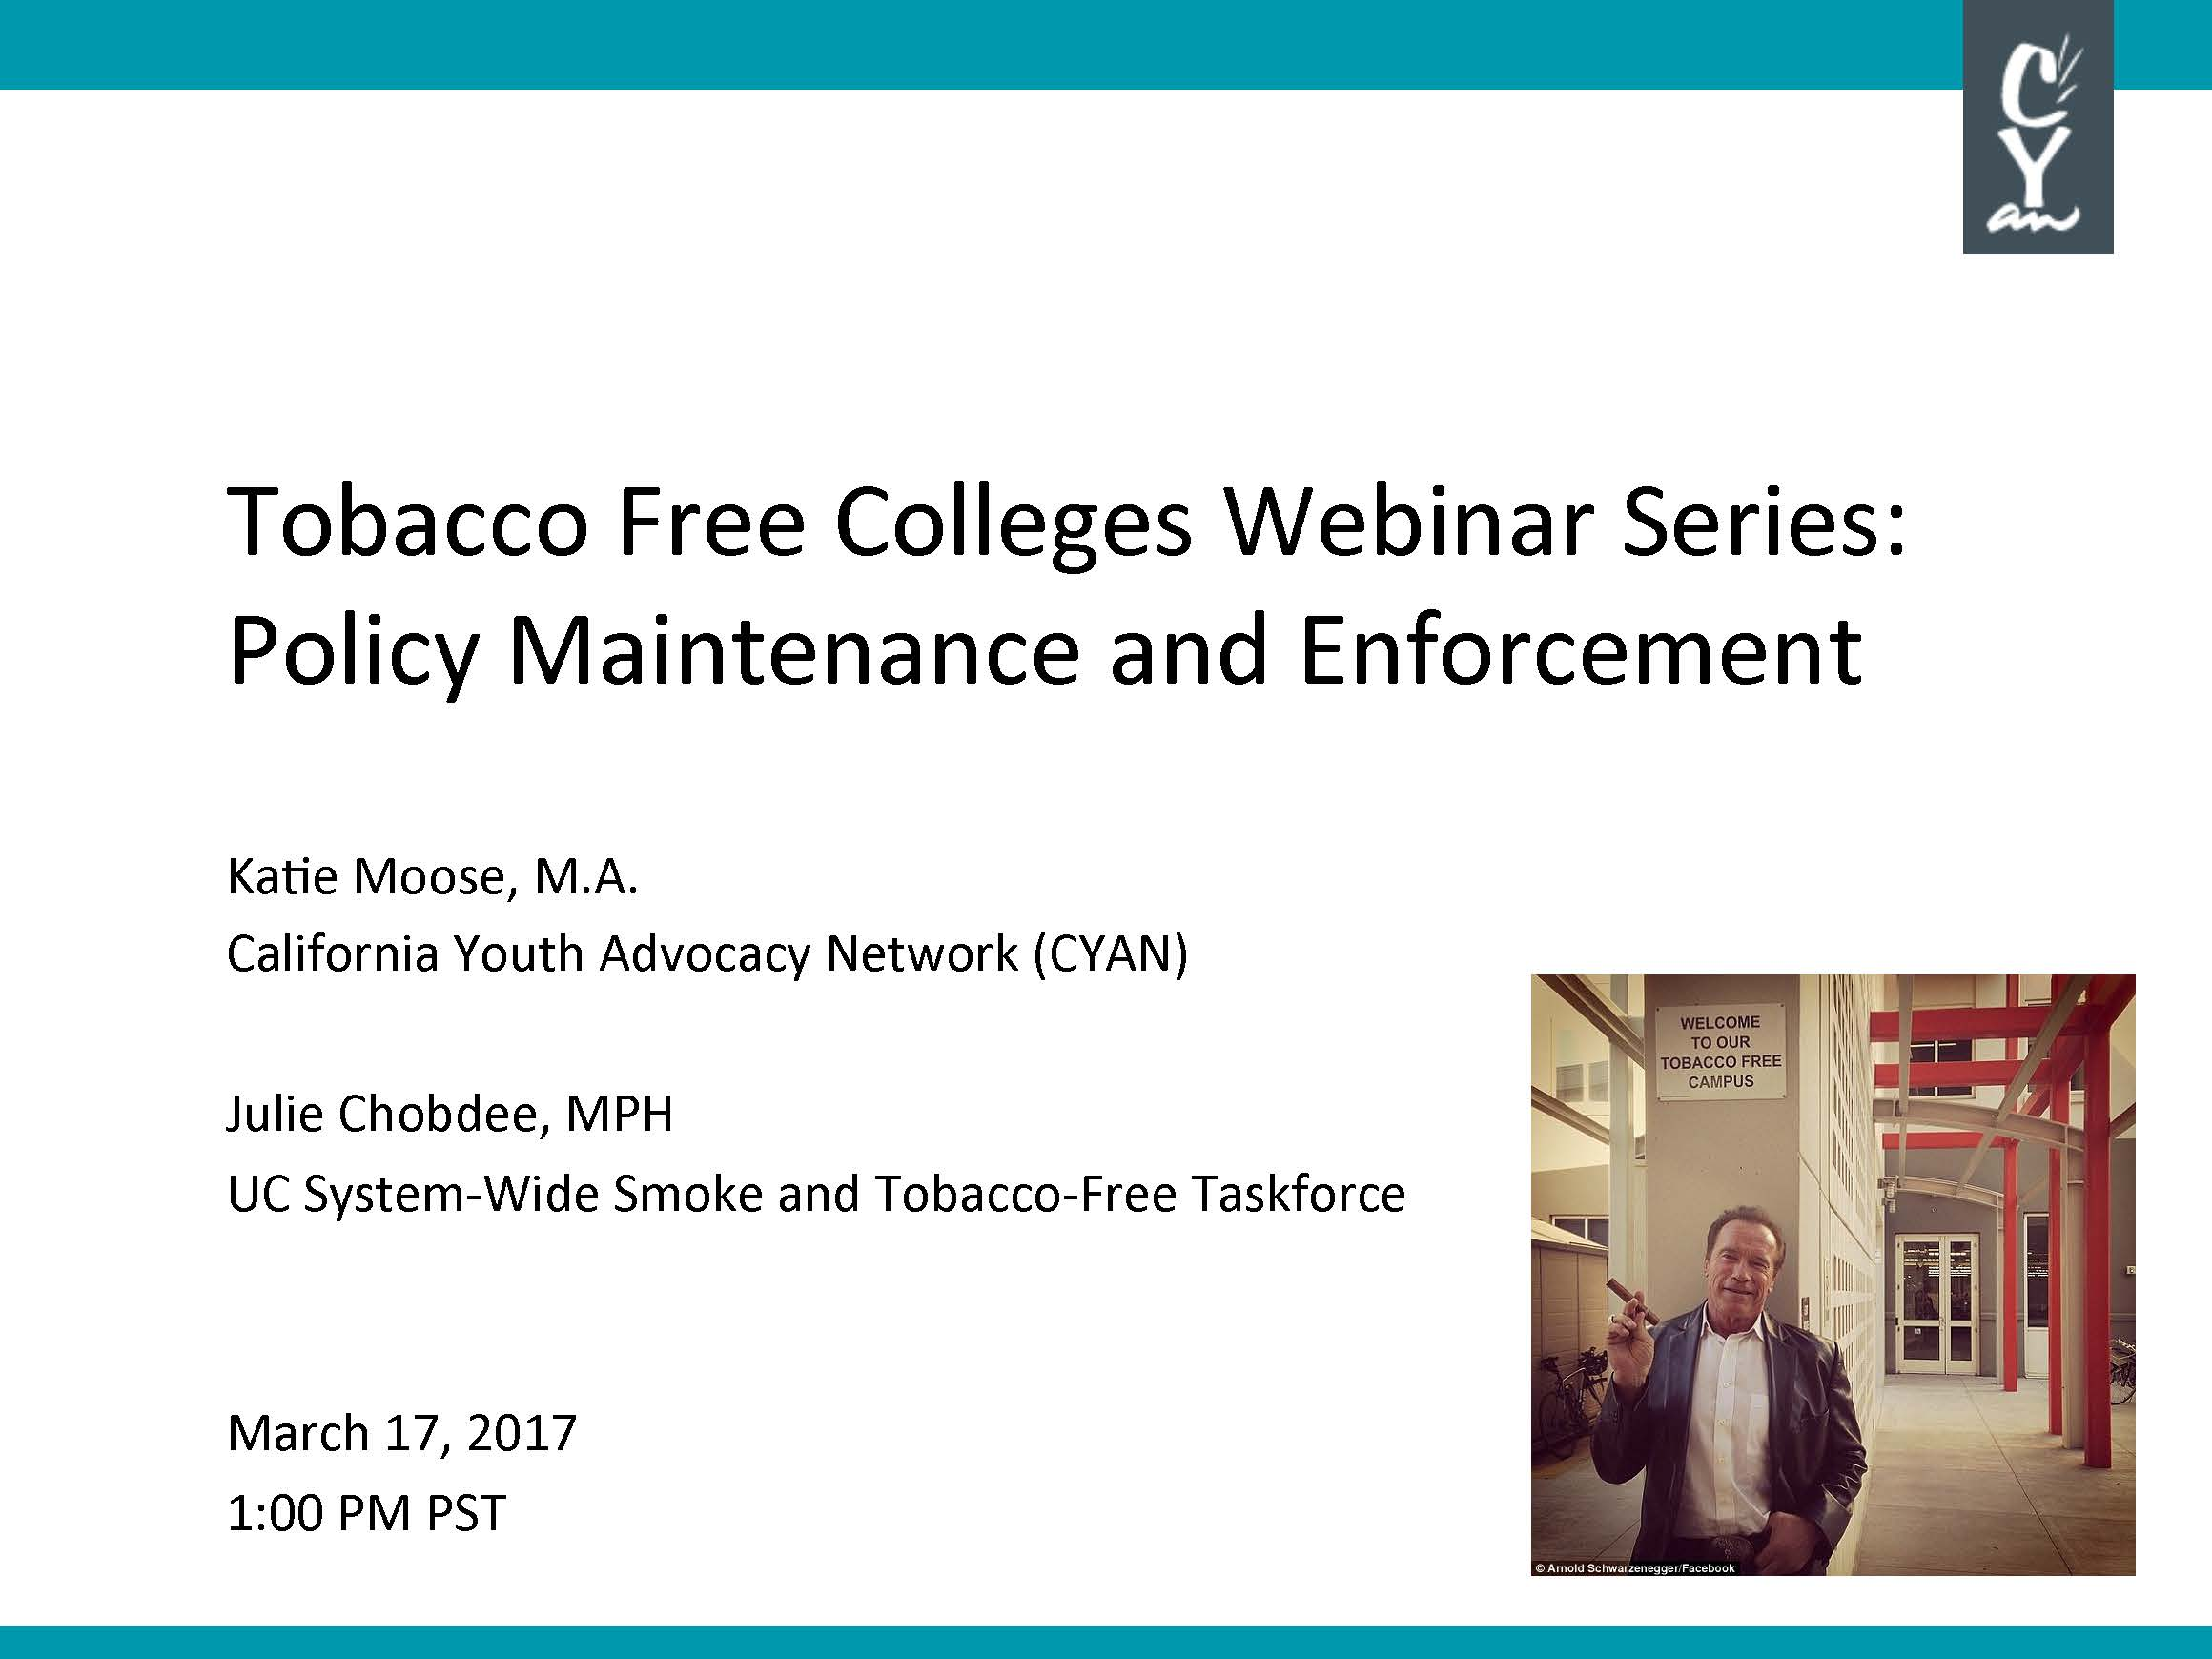 Learn about various enforcement strategies, get answers to your questions about using citations, and learn about policy maintenance strategies that colleges across the state are using to keep their campuses free from tobacco, years after their smoke/tobacco-free policies have gone into effect.